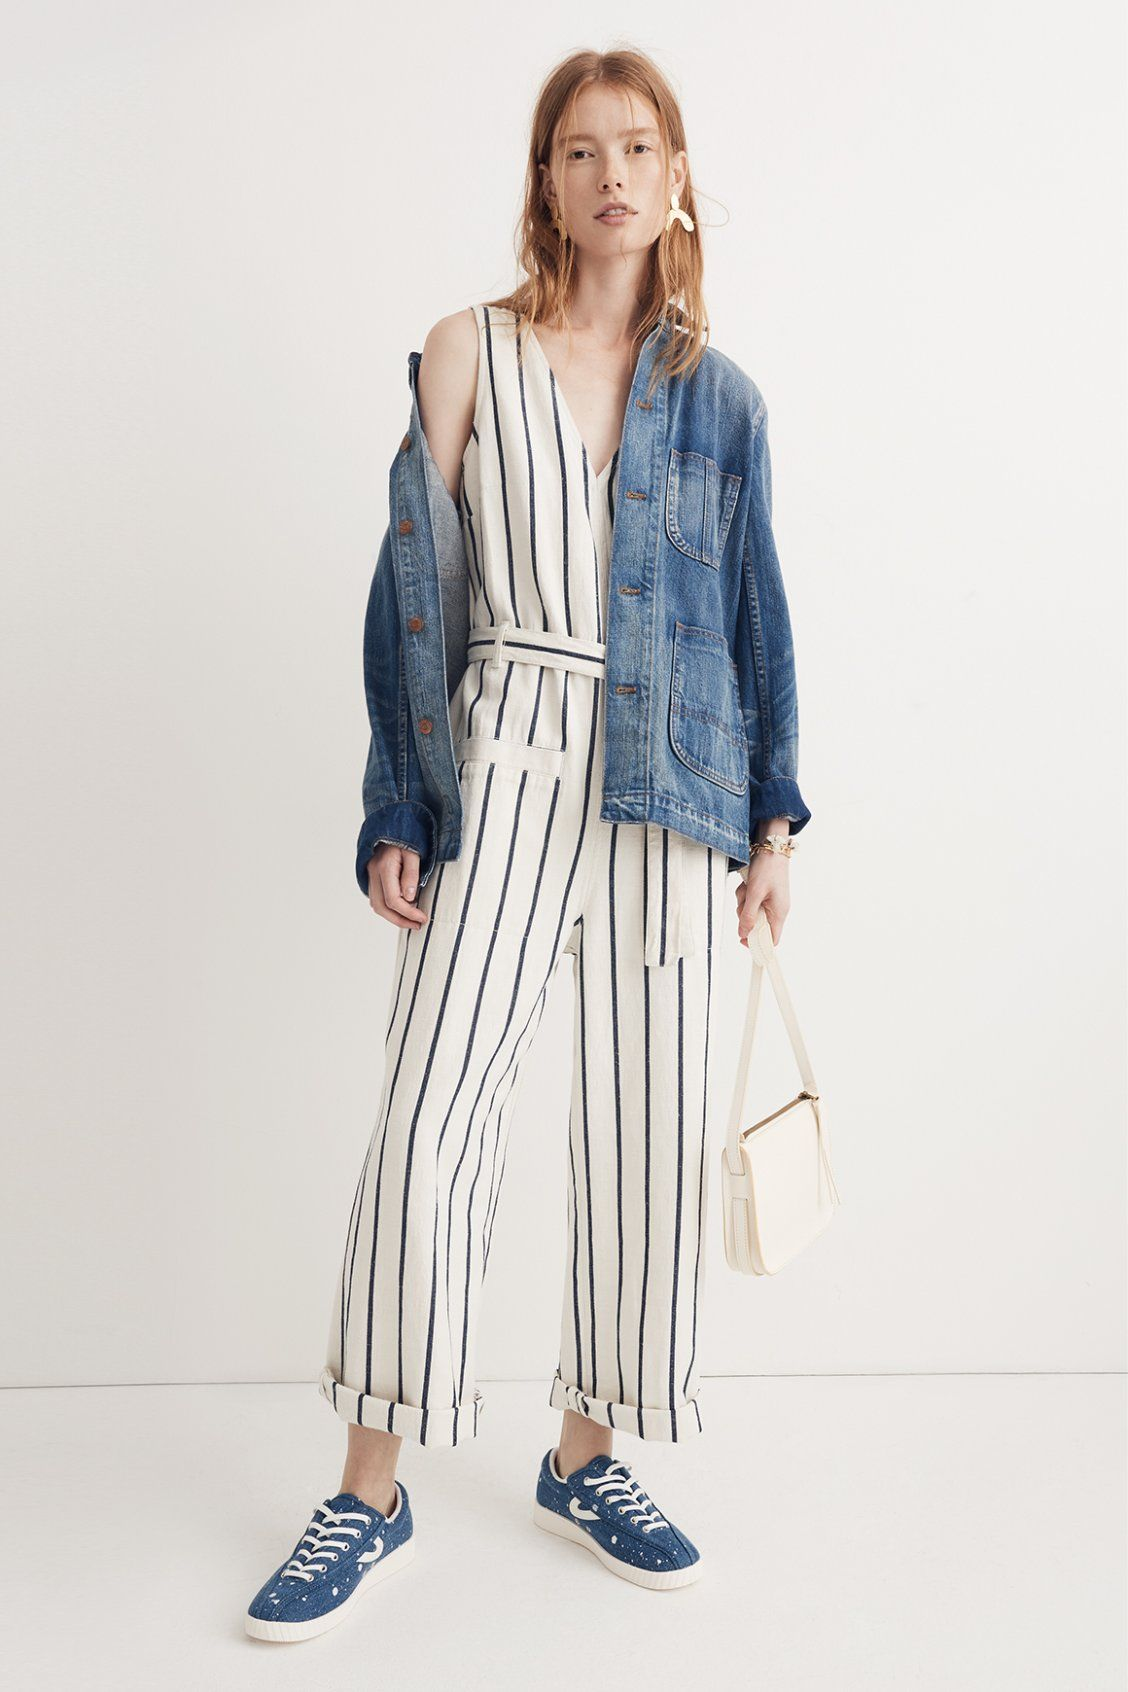 41544c5e632 madewell denim chore coat worn with striped pull-on jumpsuit + the simple  crossbody bag. call 866 544 1937 or email shopfirst madewell.com to  pre-order.